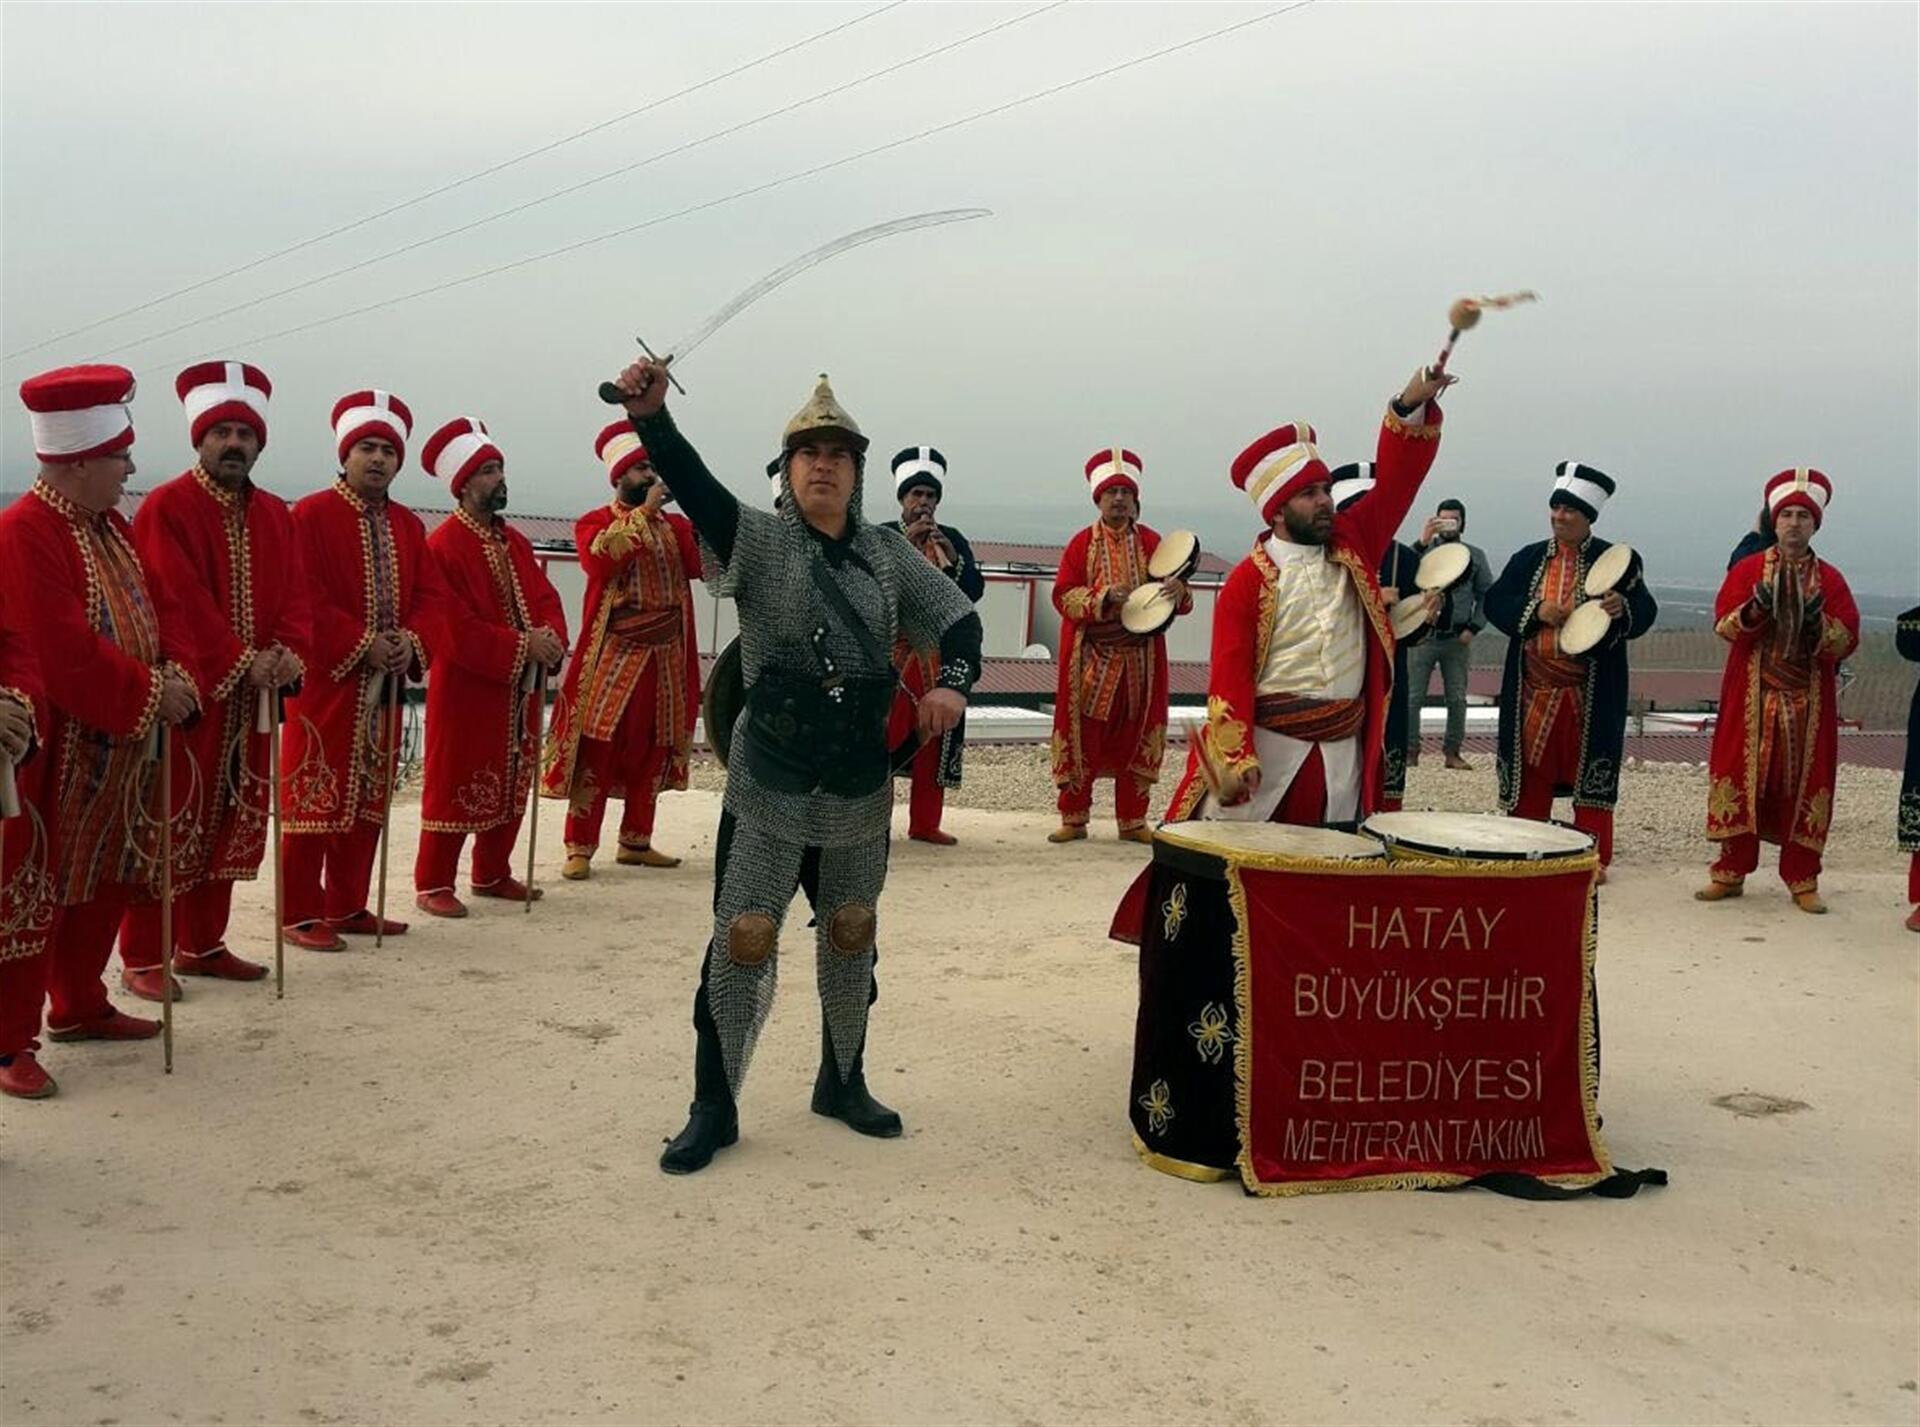 Ottoman military band performs at Turkey-Syria border